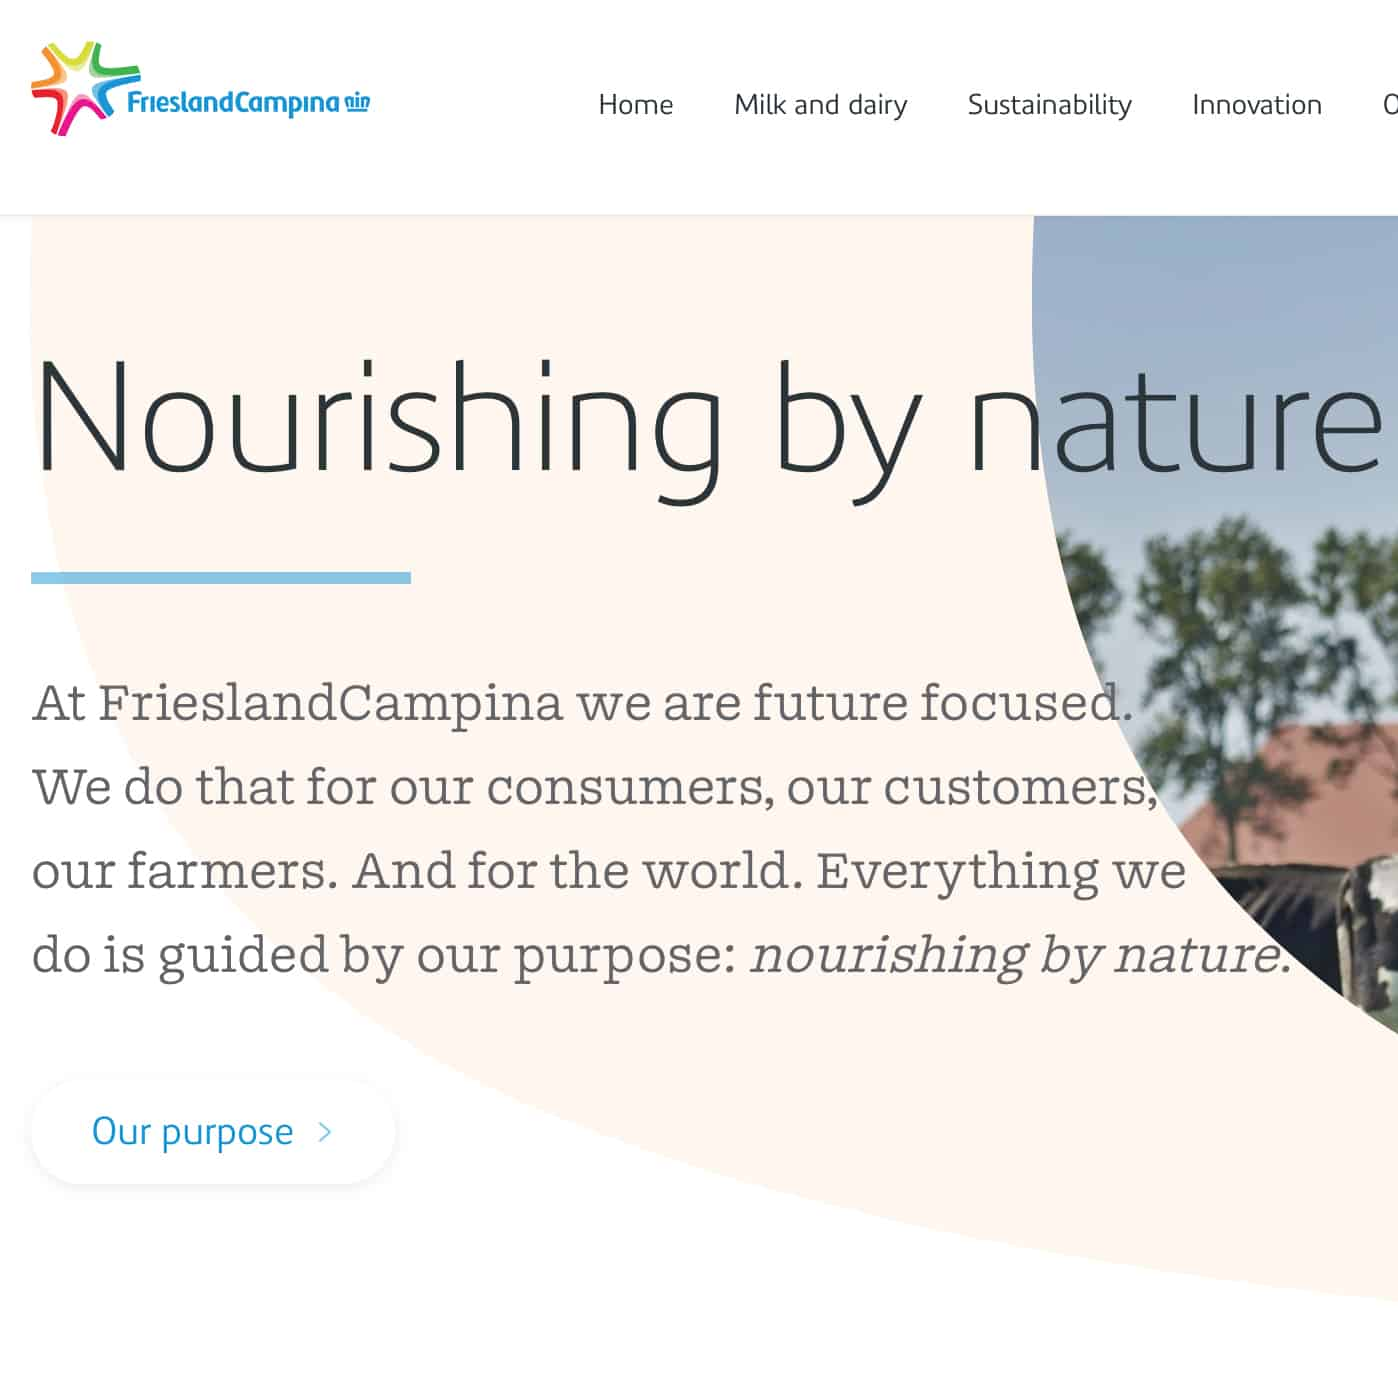 FrieslandCampina's corporate website